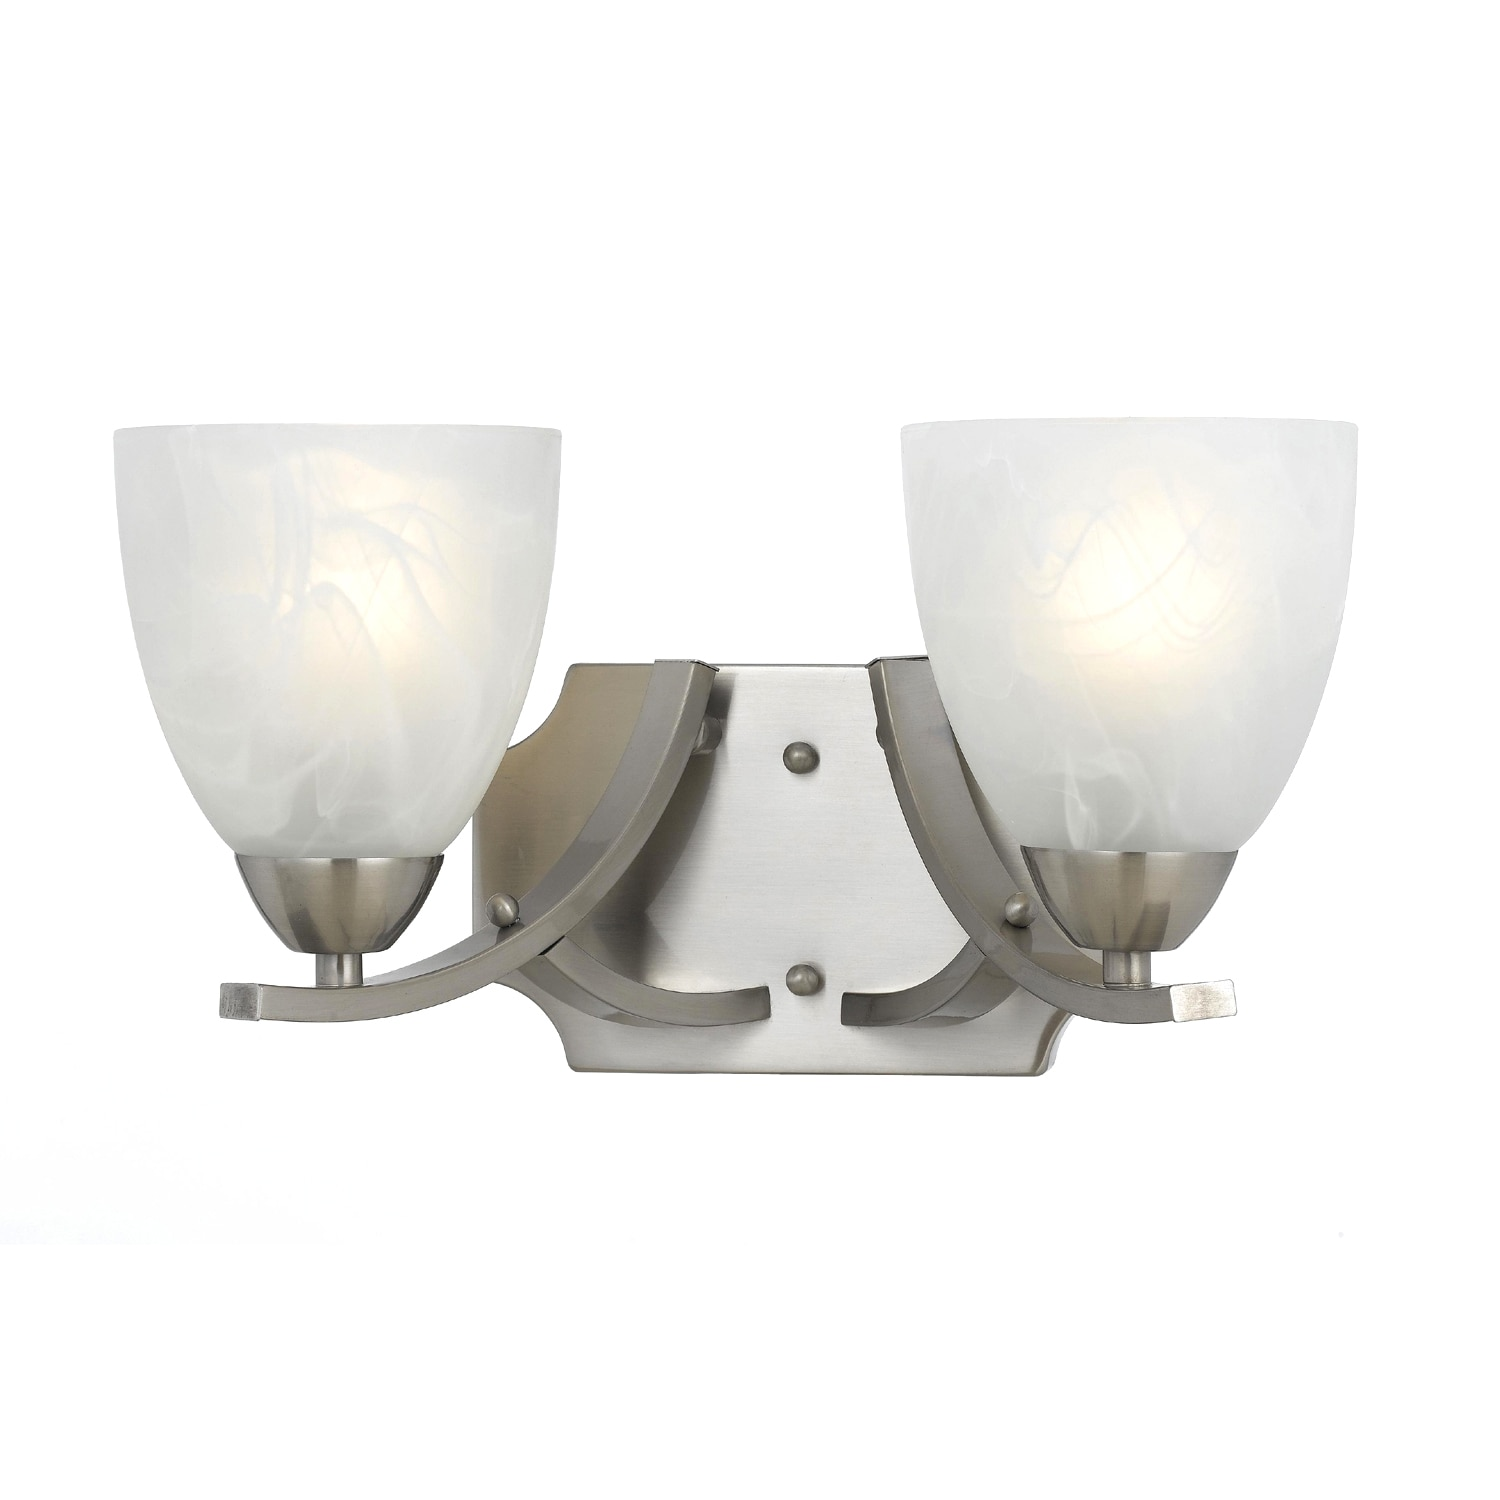 Bathroom Vanity Lights Overstock : Transitional 2 light Bath Vanity in Satin Nickel - 14339797 - Overstock.com Shopping - Top Rated ...